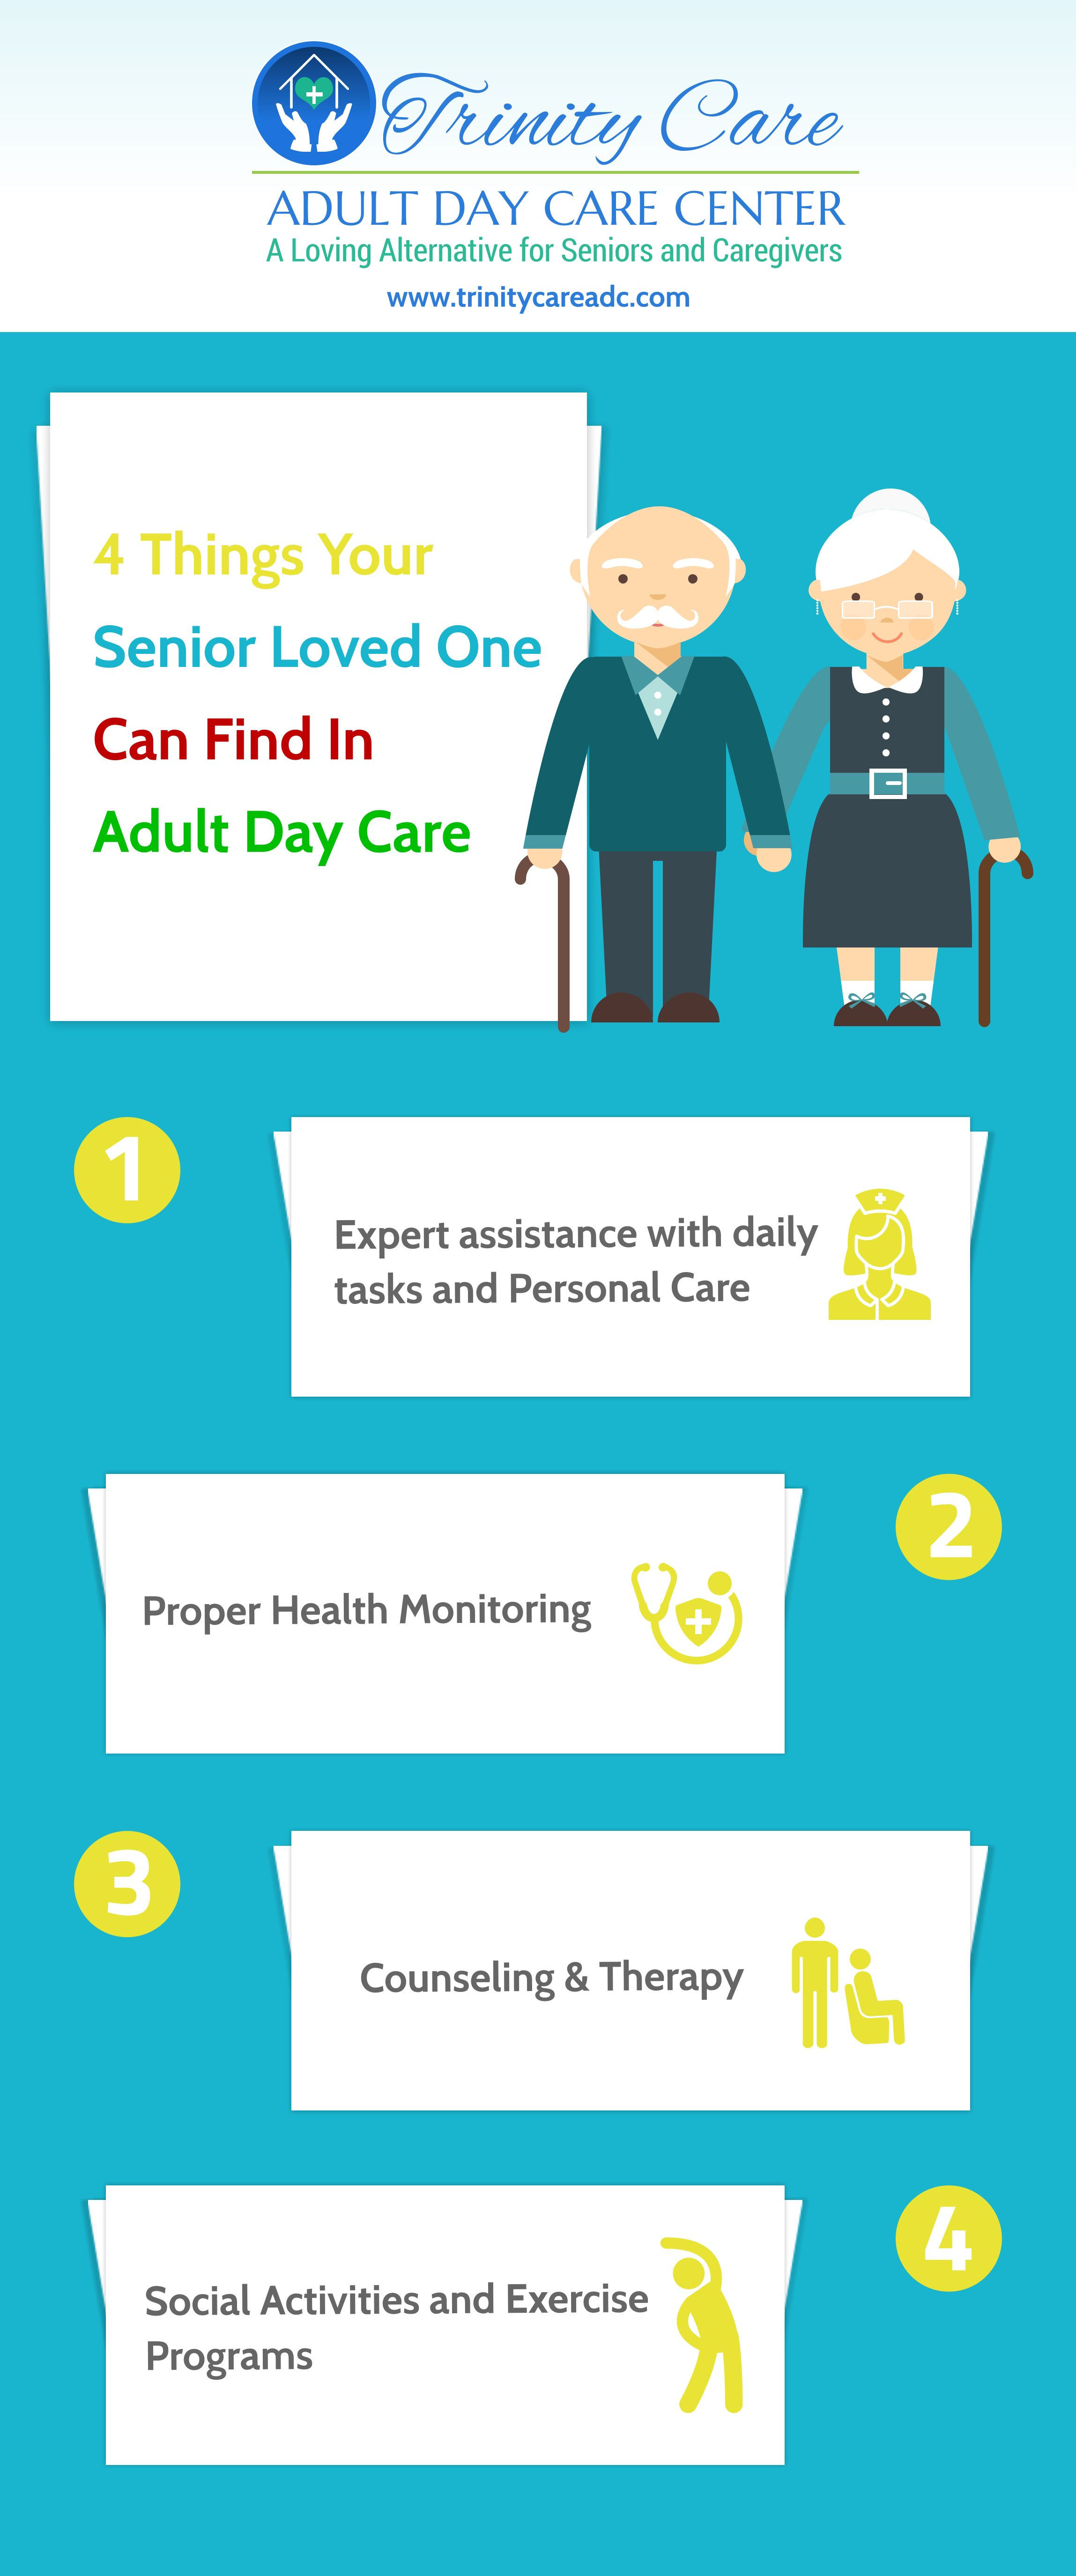 4 Things Your Senior Loved One Can Find In Adult Day Care